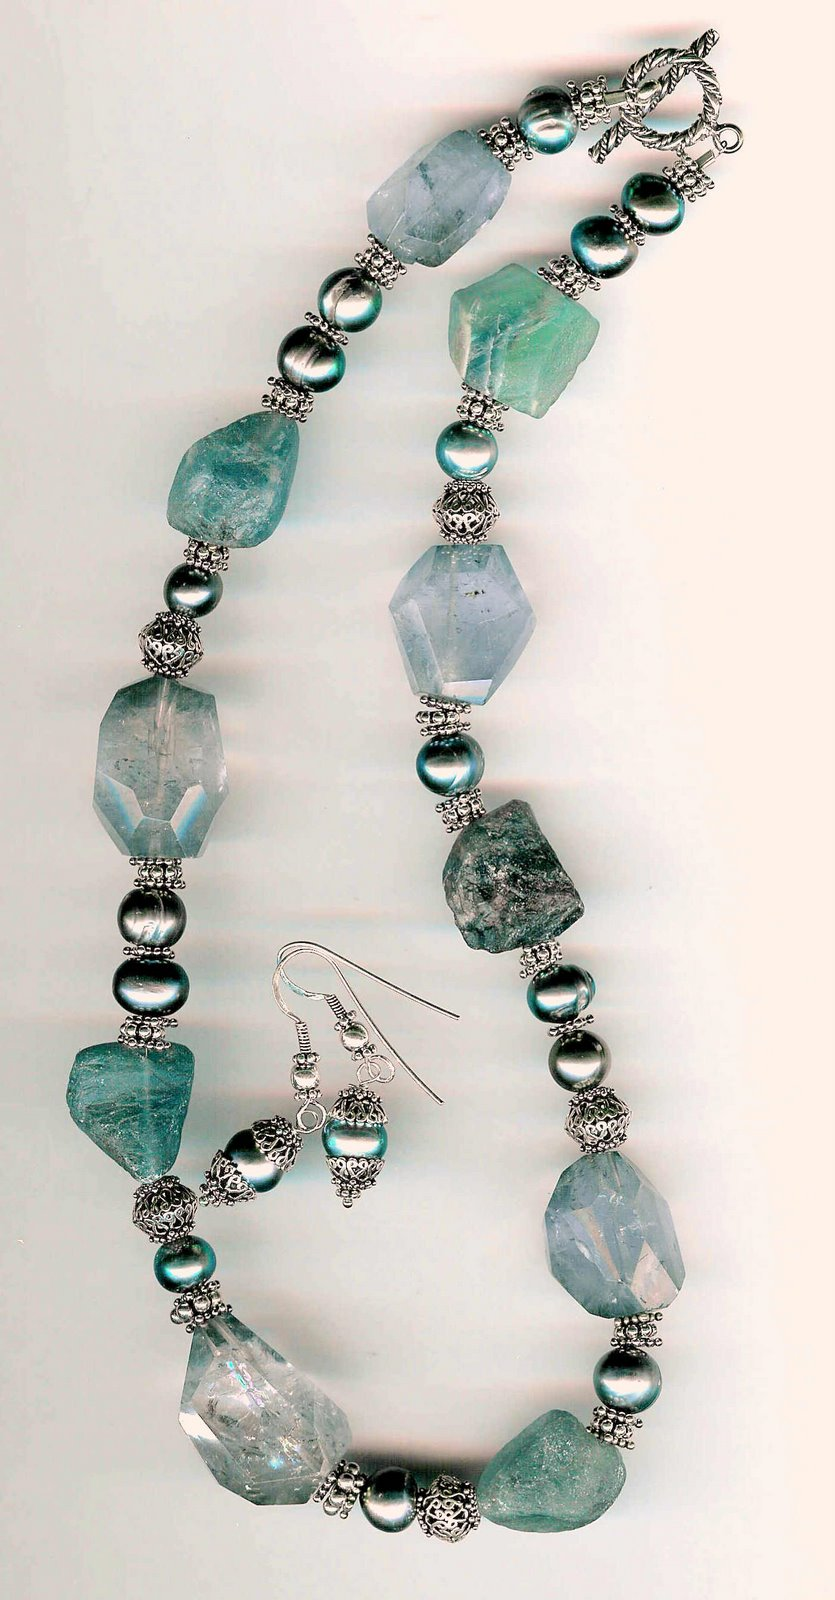 62. Rough Fluorite, Amrthysts, Freshwater pearls with Bali Sterling Silver + Earrings